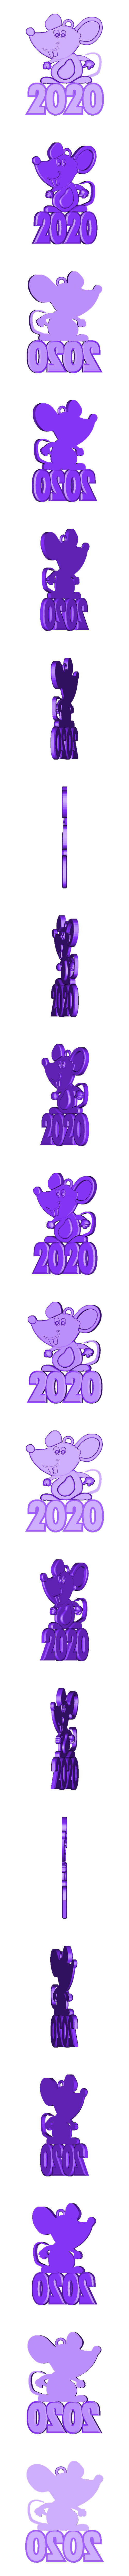 2020_mouse_on_surface_fixed.stl Download free STL file 2020 mouse Christmas decorations • 3D printer design, AndreyR3